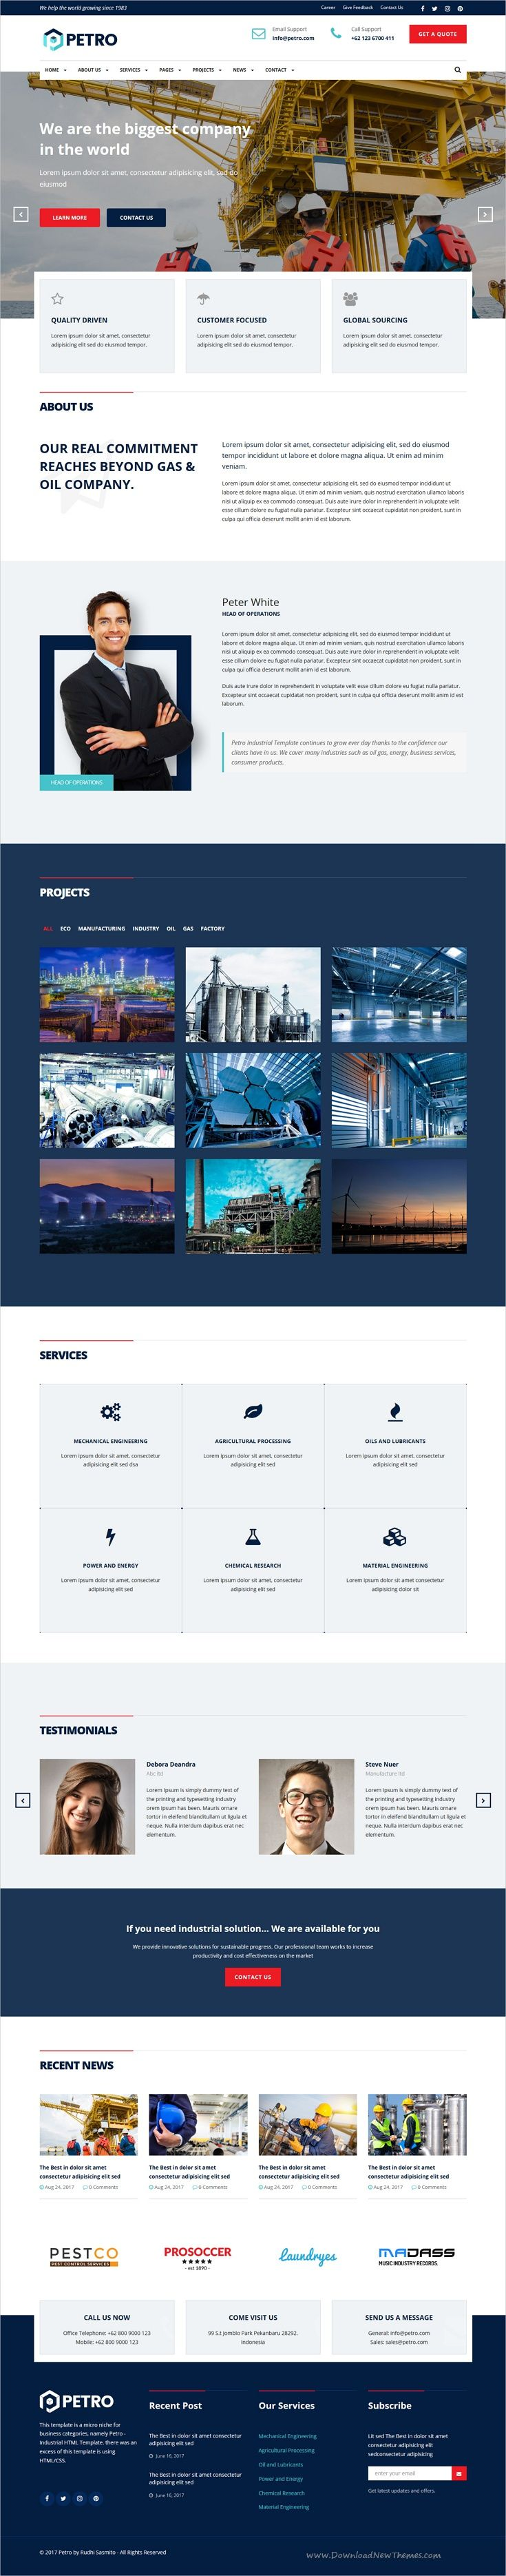 Petro is clean and modern design responsive #HTML template for #industrial, oil and gas, #manufacturing, mechanical, #power and energy, engineering companies website download now➩ https://themeforest.net/item/petro-industrial-html-template/19846808?ref=Datasata